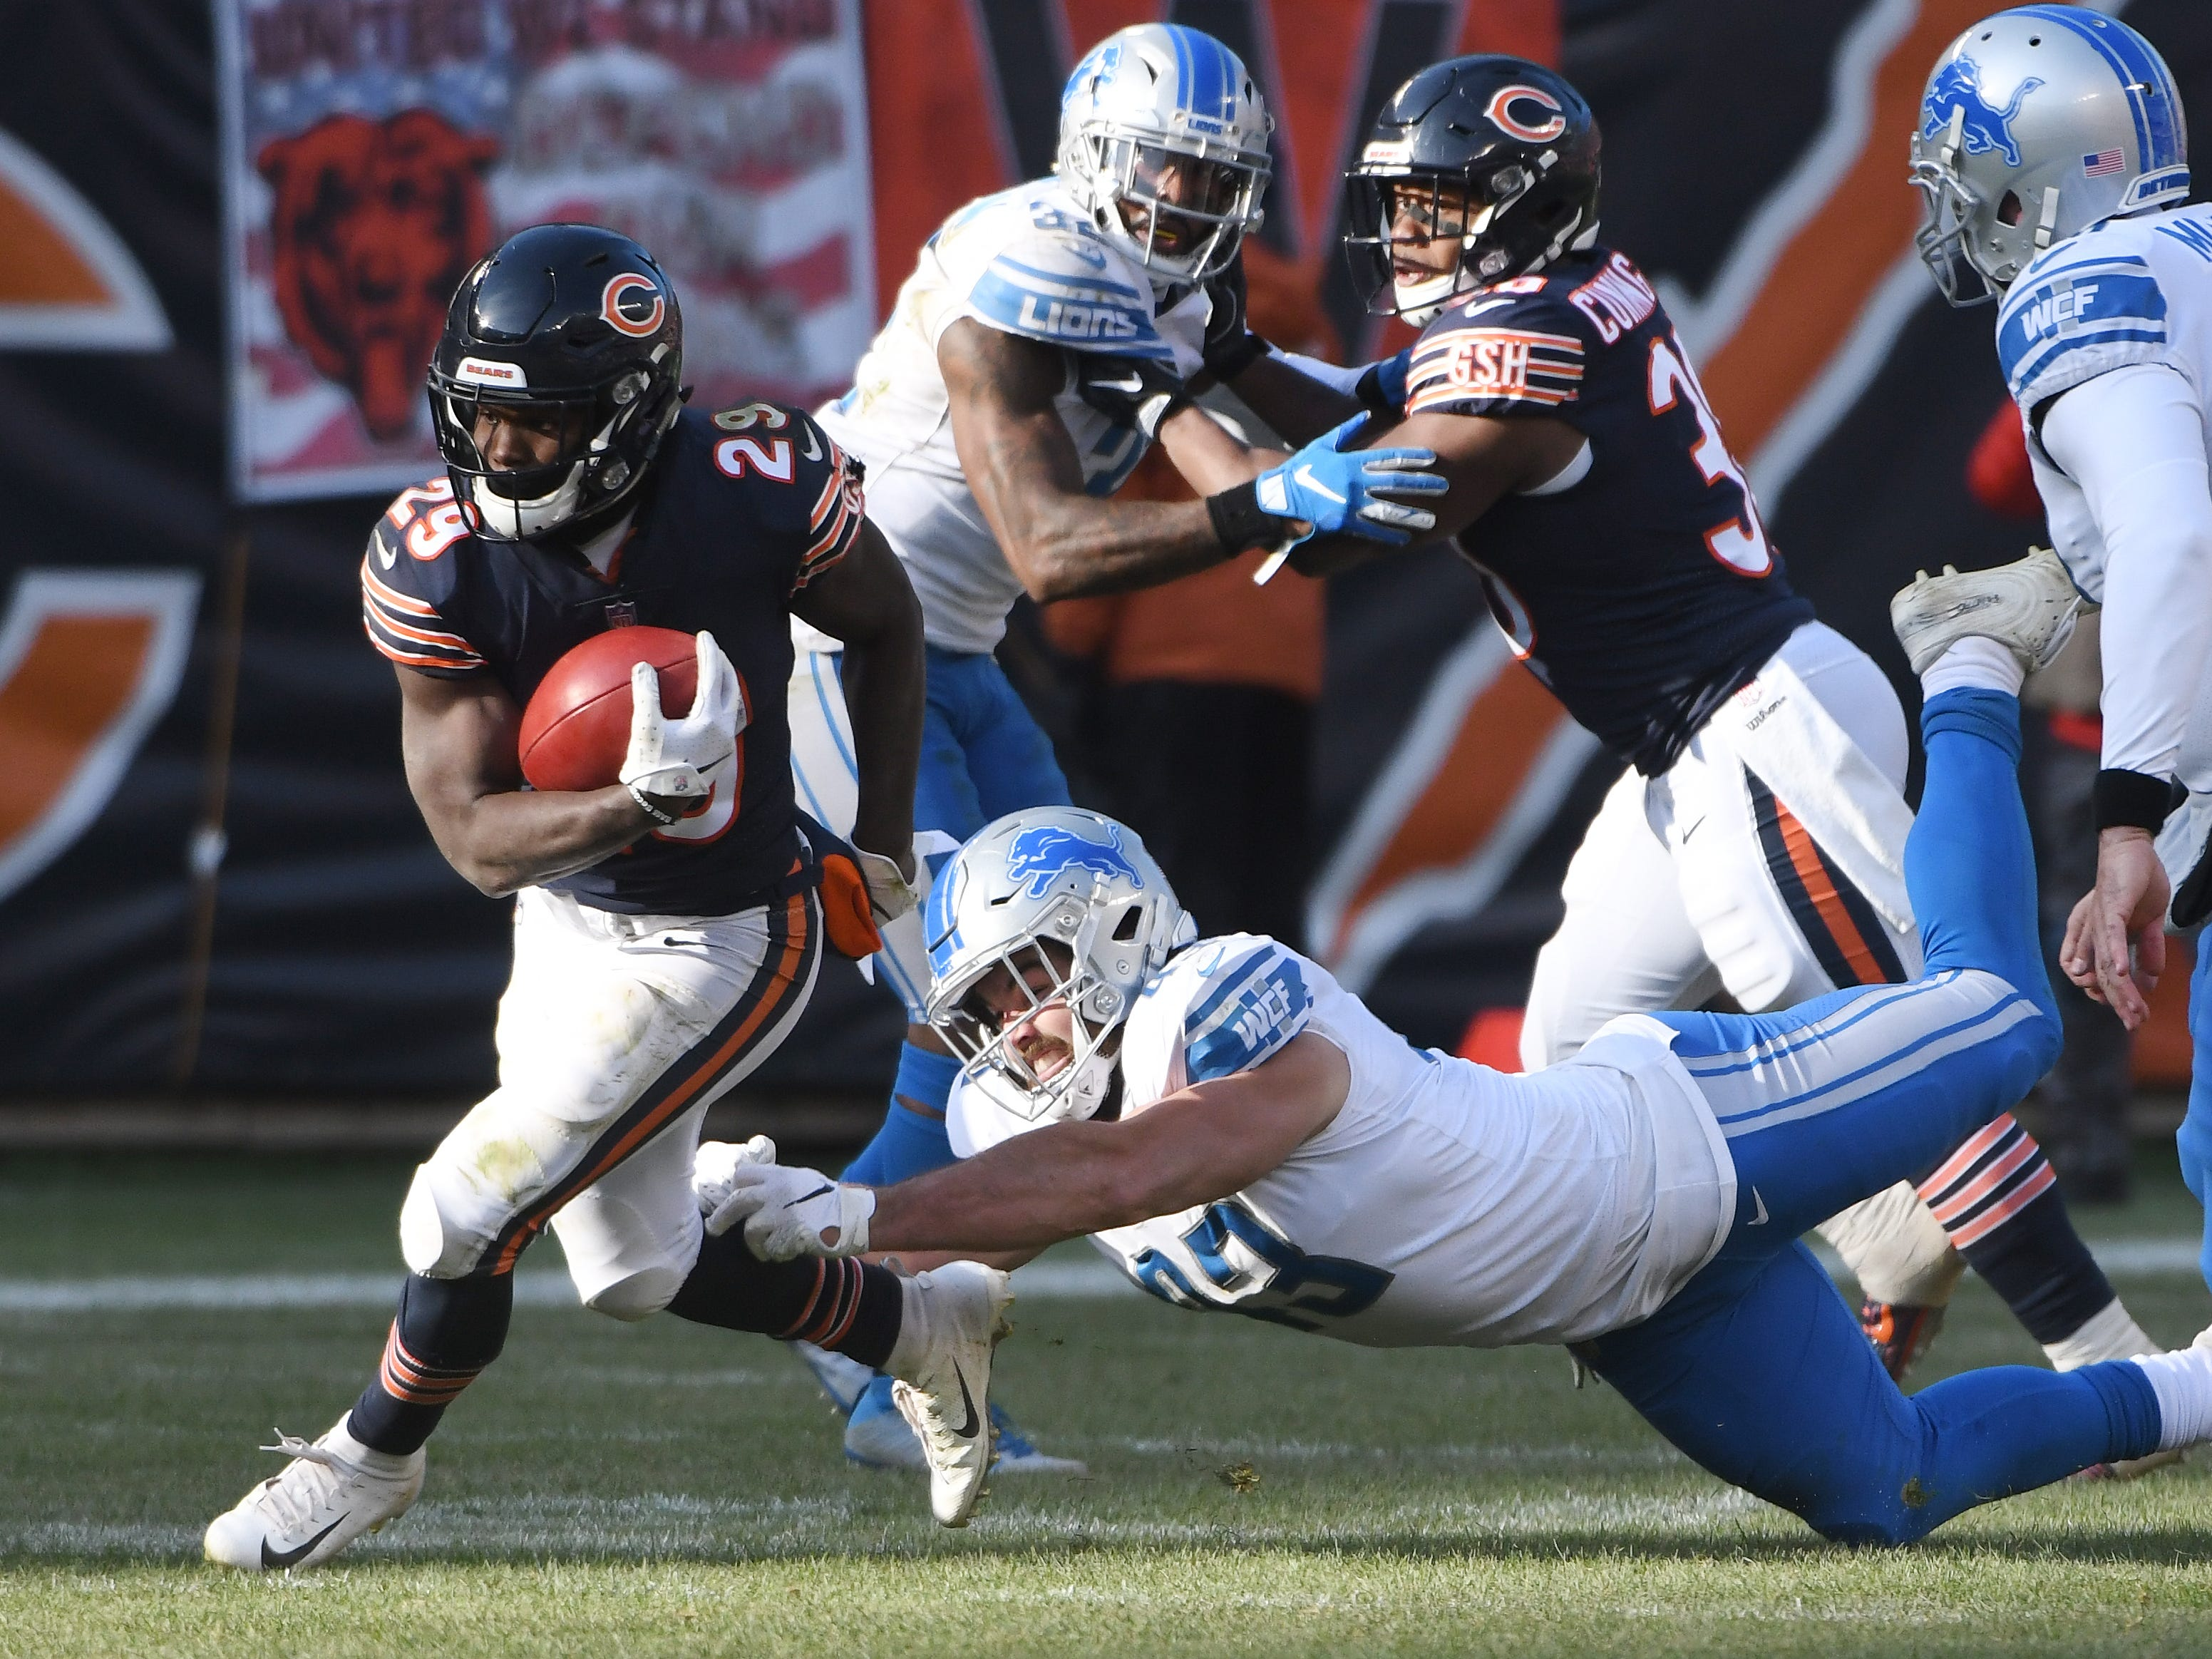 Lions' Nick Bellore tries to bring down Bears running back Tarik Cohen in the third quarter.